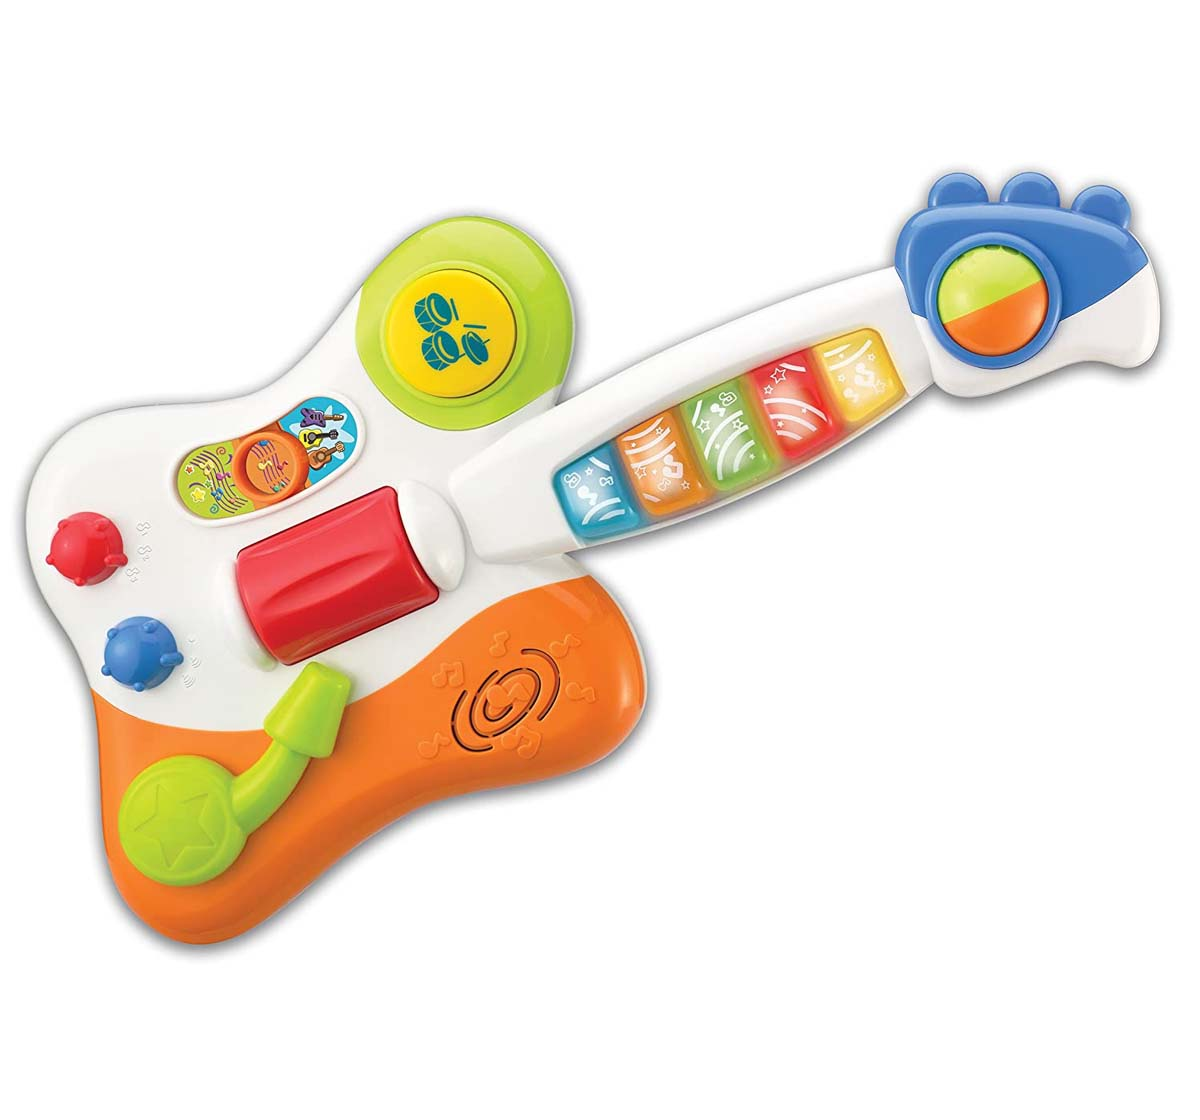 WinFun | Winfun Little Rock Star Guitar Learning Toys for Kids age 3Y+